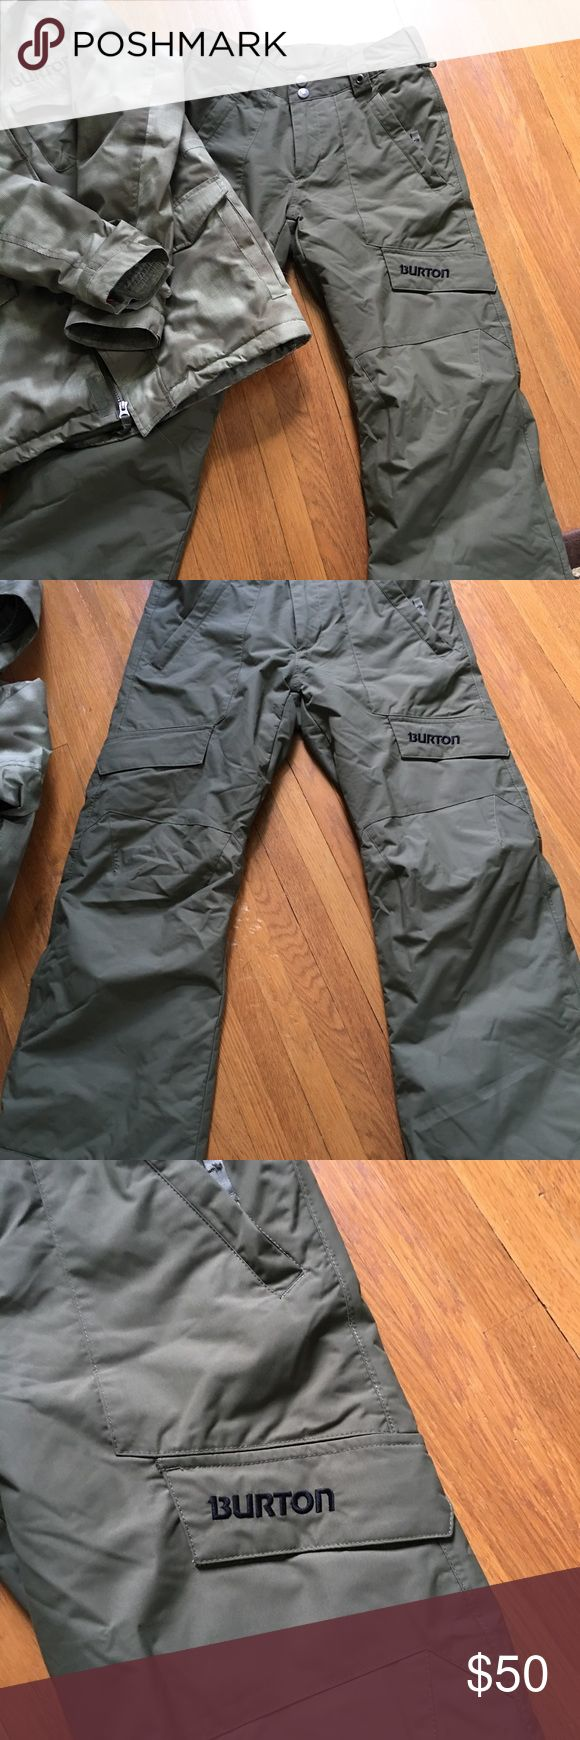 Burton snowboarding/ski pants! EUC! Boys Burton ski and snowboarding pants. Army green. Have in both size XL and L. The L fits like a size 12-14. The XL fits like a size 16-18. Listed separately. Check out the matching coat! Warm pants and excellent quality. Great shape! Look new! Burton Bottoms